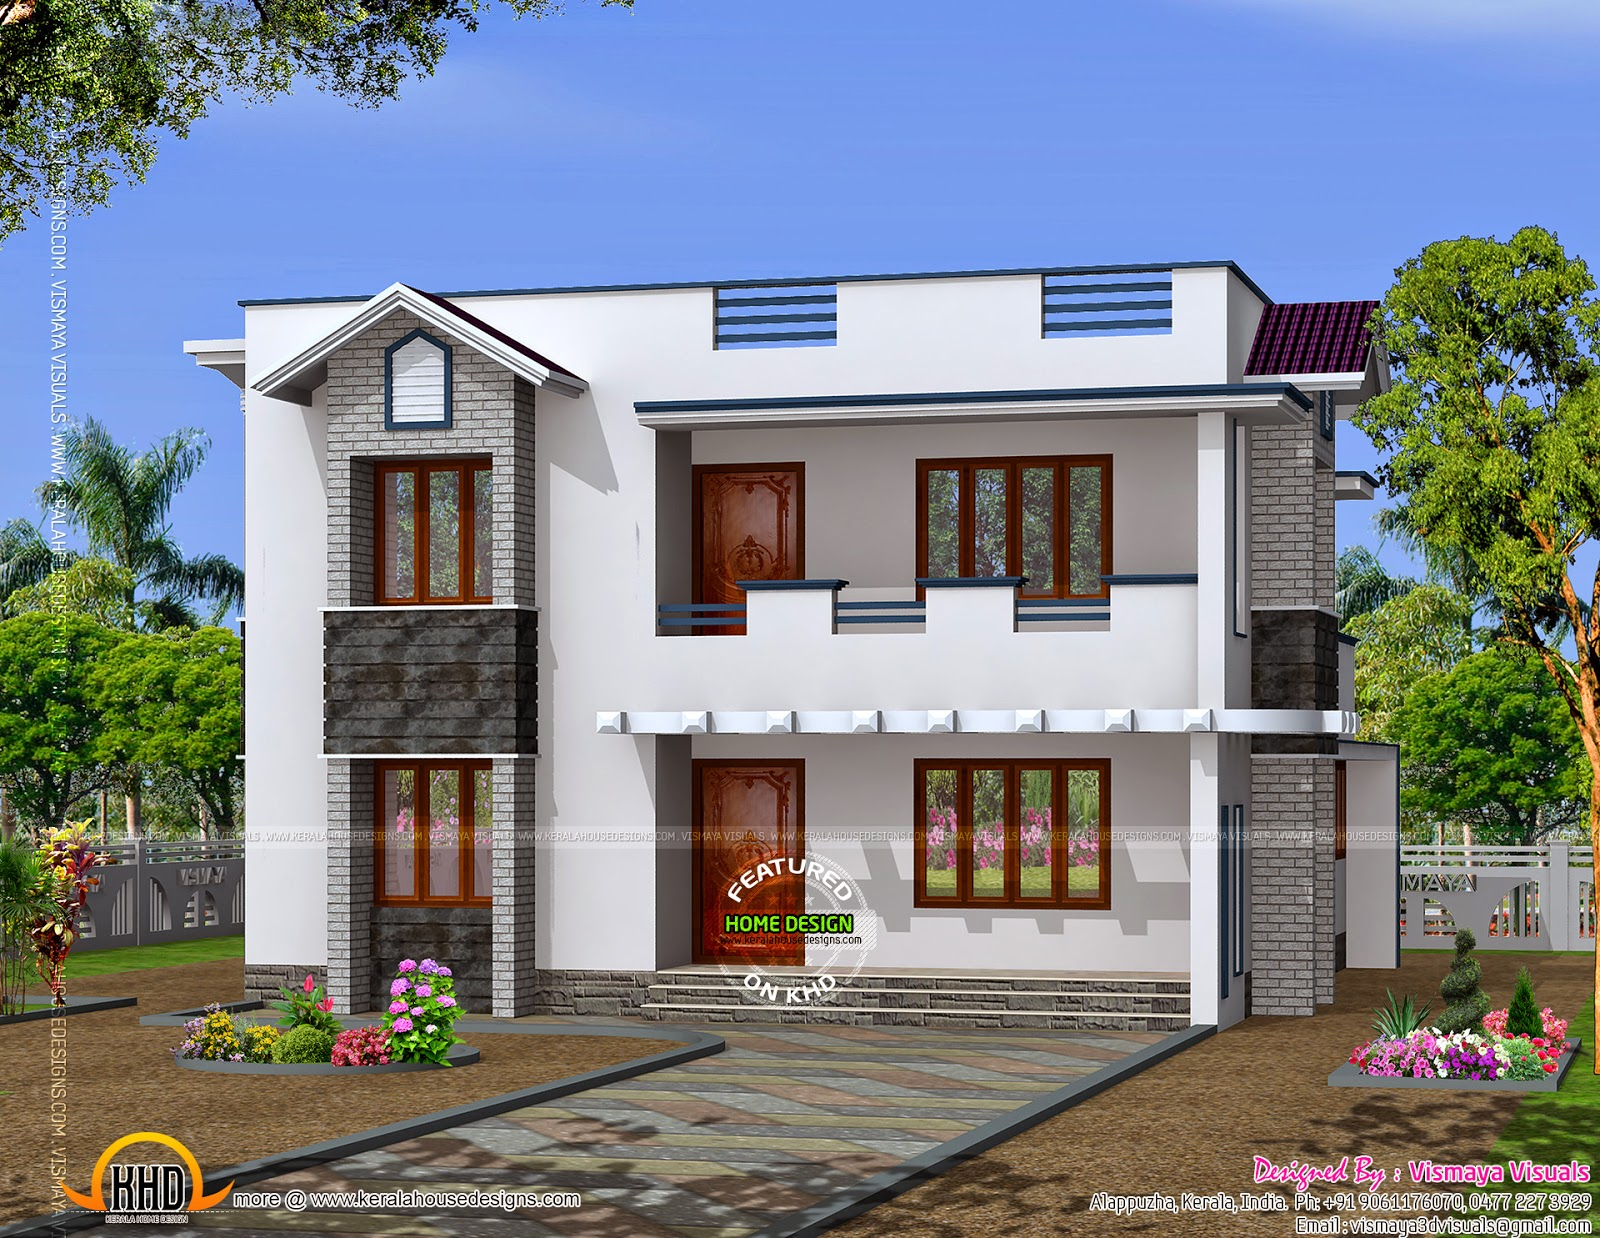 Simple design home kerala home design and floor plans for Houses and their plans